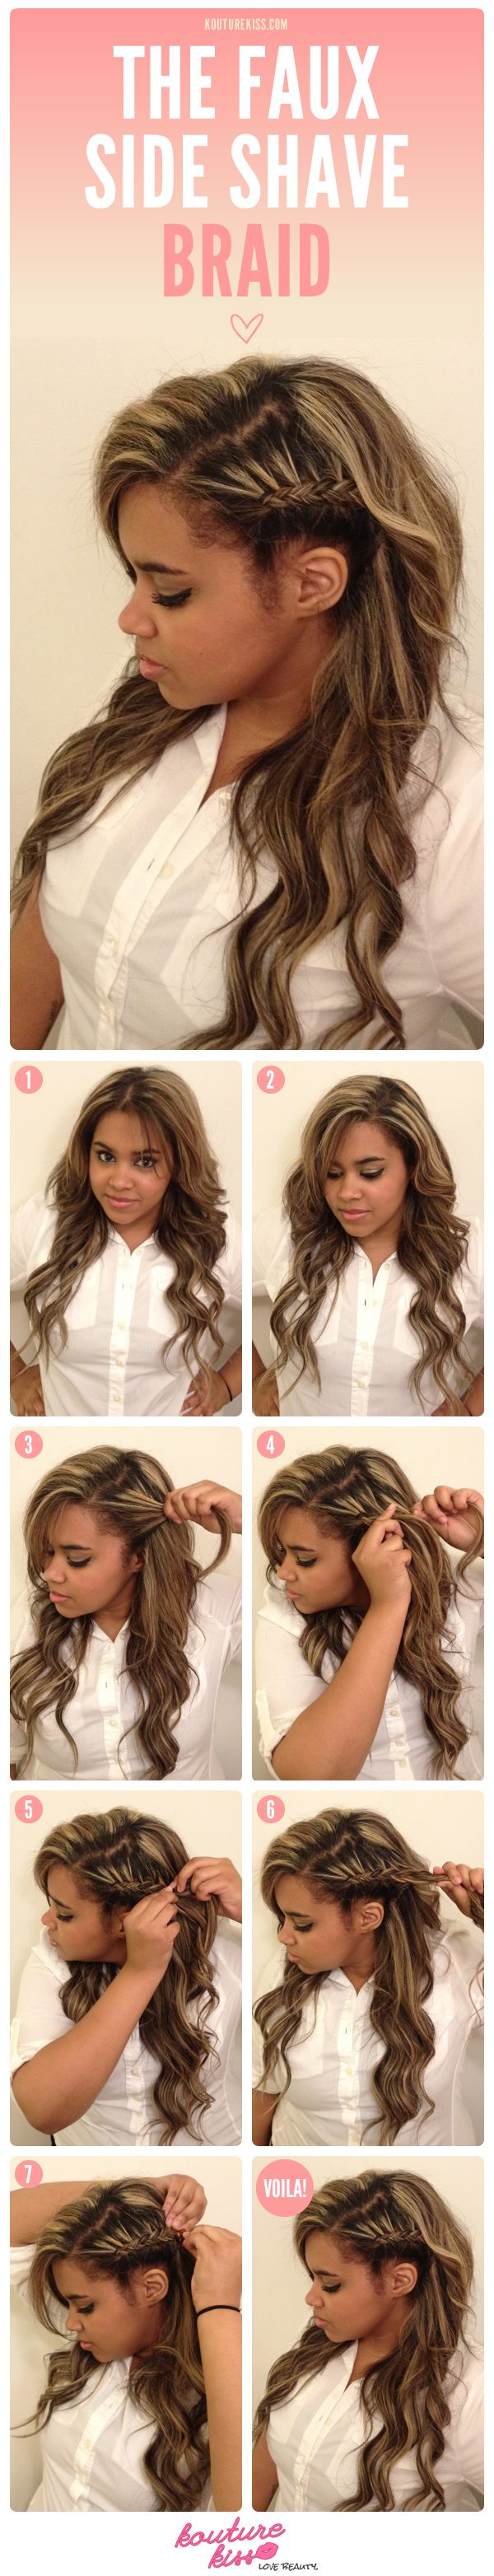 My Newest KoutureKiss Tutorial On 'The Faux Side Shave Braid